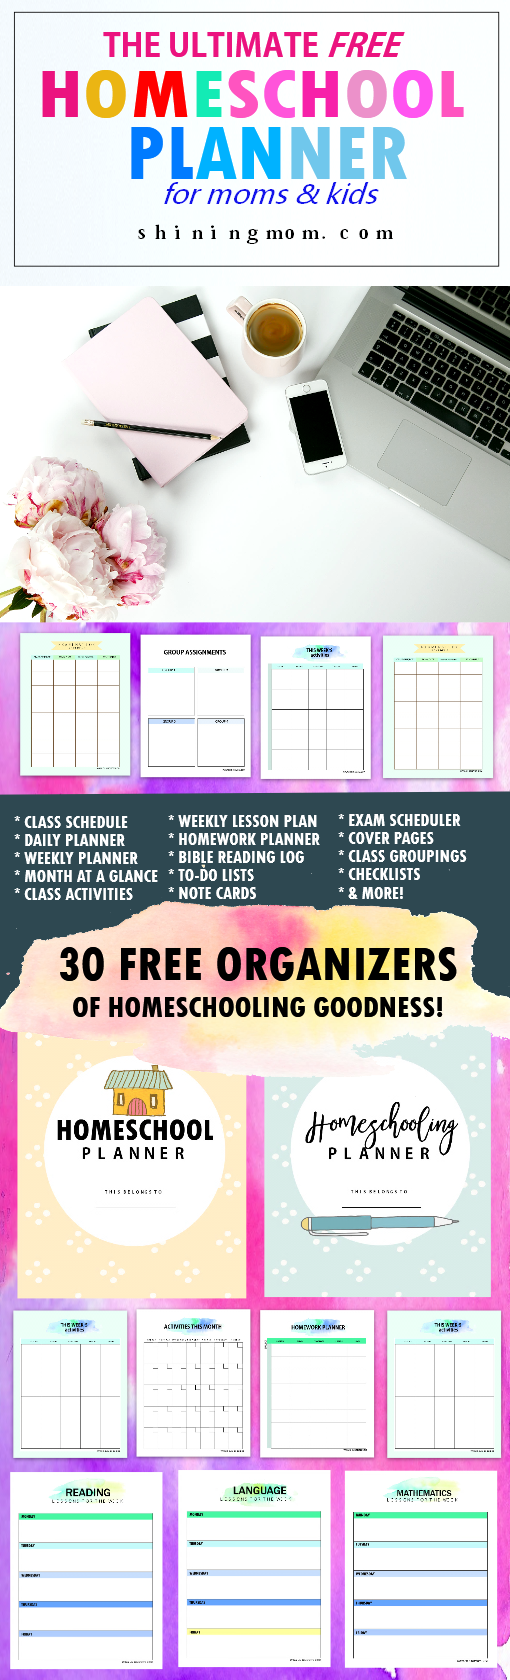 photo relating to Free Printable Homeschool Planner identify The Top No cost Homeschool Planner: 30+ Incredible Printables!